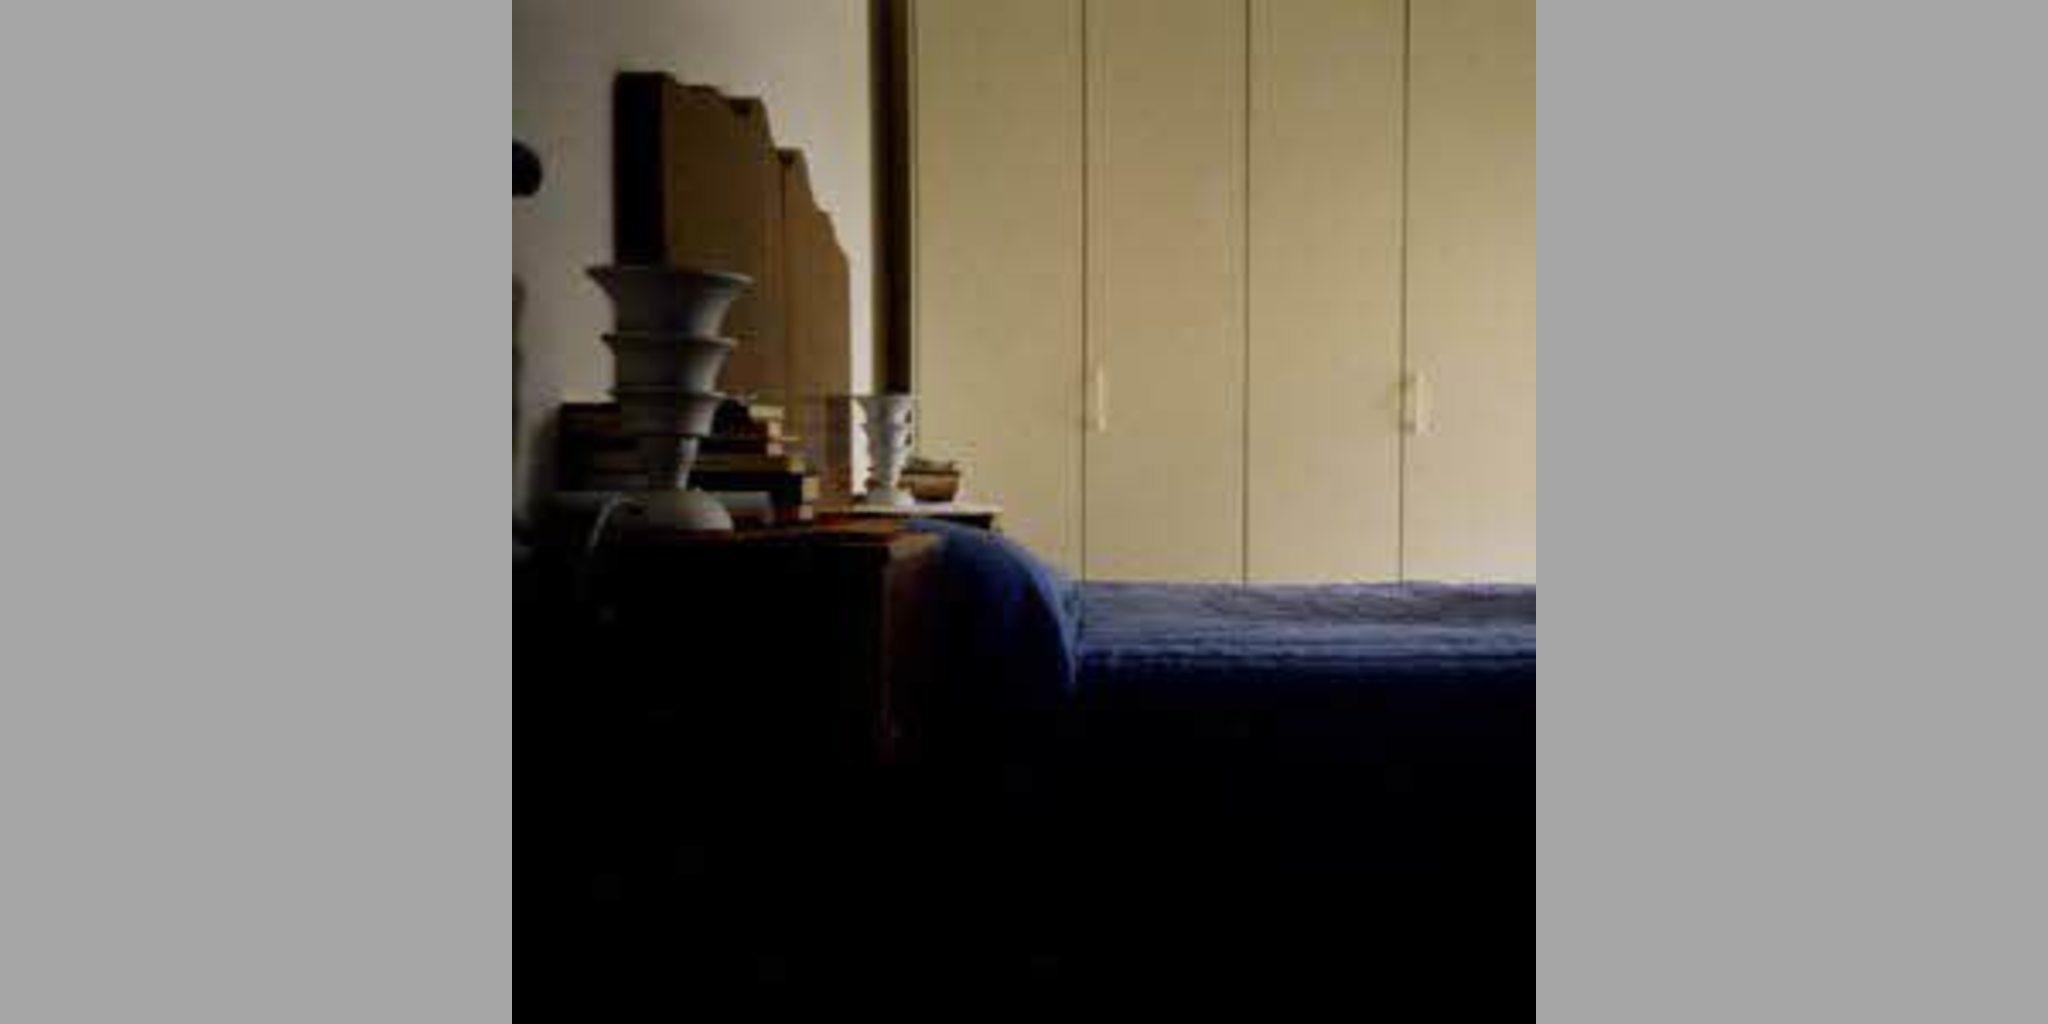 Bed & Breakfast Chignolo D'Isola - Galilei